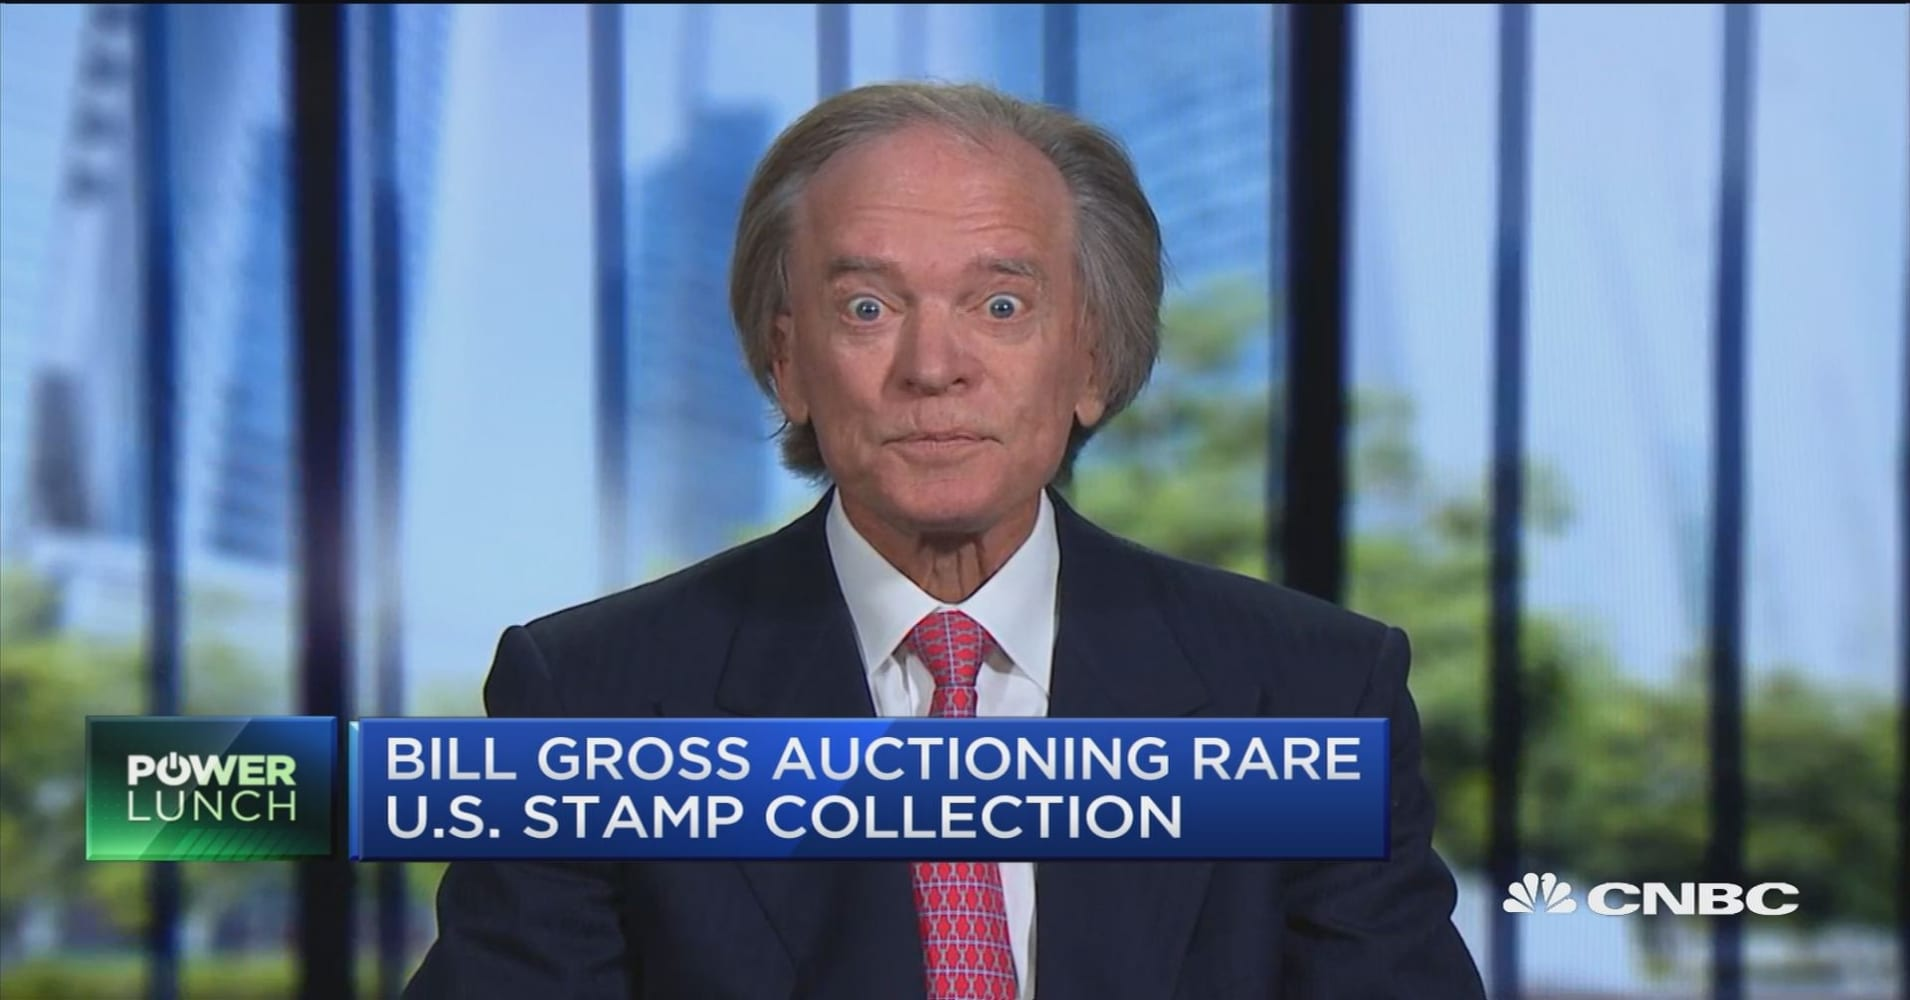 Bill Gross Auctioning Rare US Stamp Collection